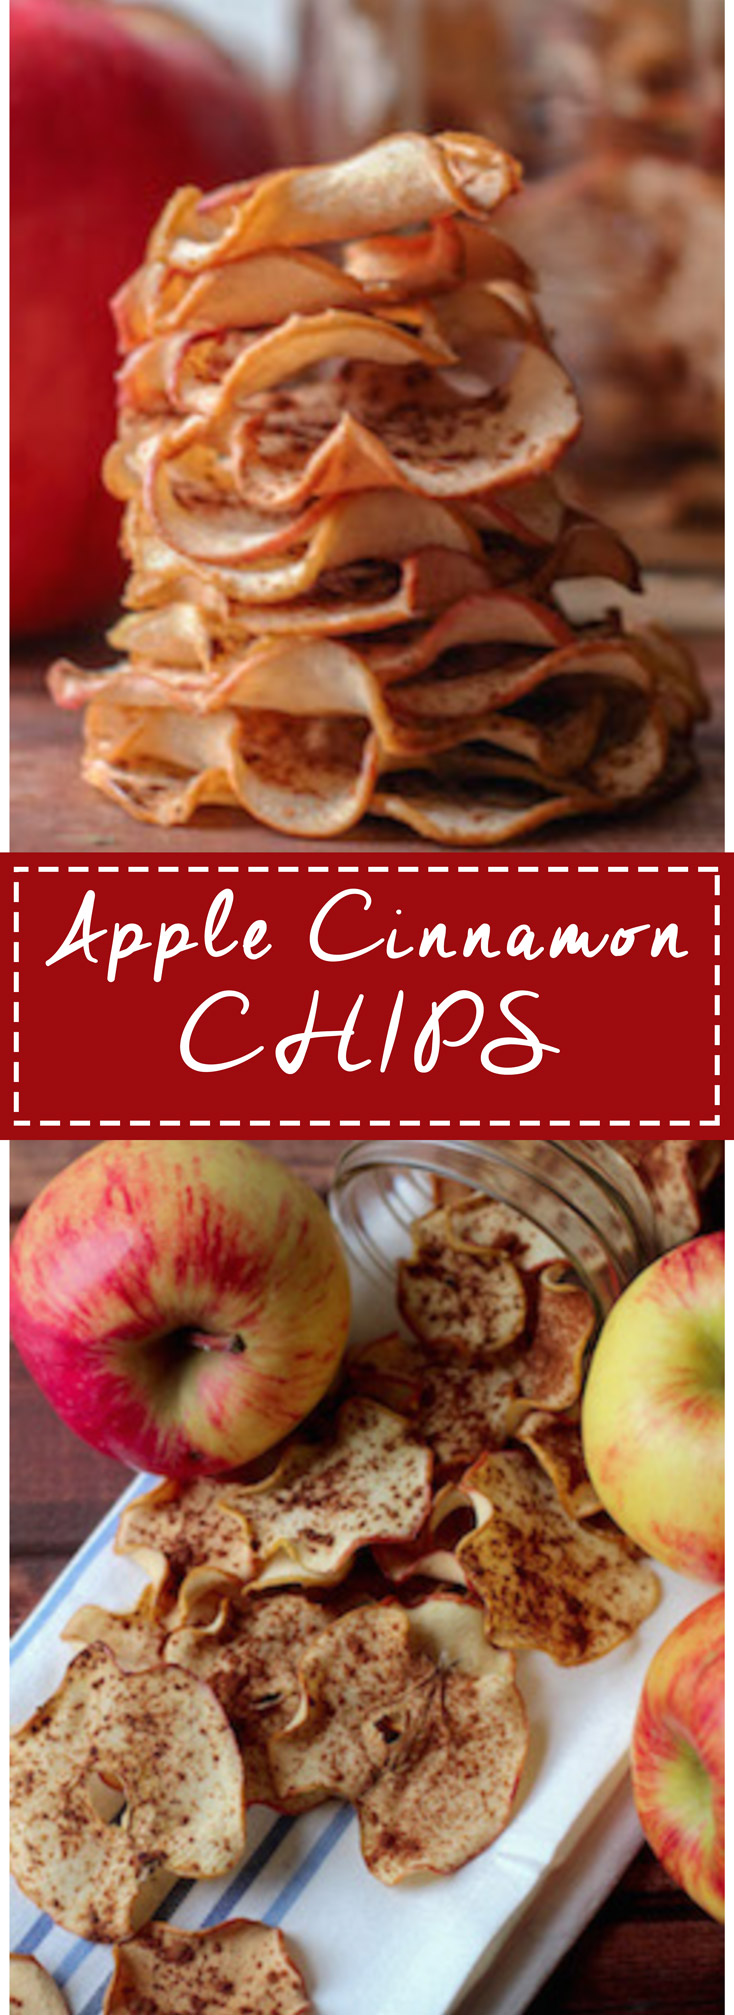 Apple Cinnamon Chips are SOOO easy to make! Perfect snack when you are craving something sweet and crunchy!